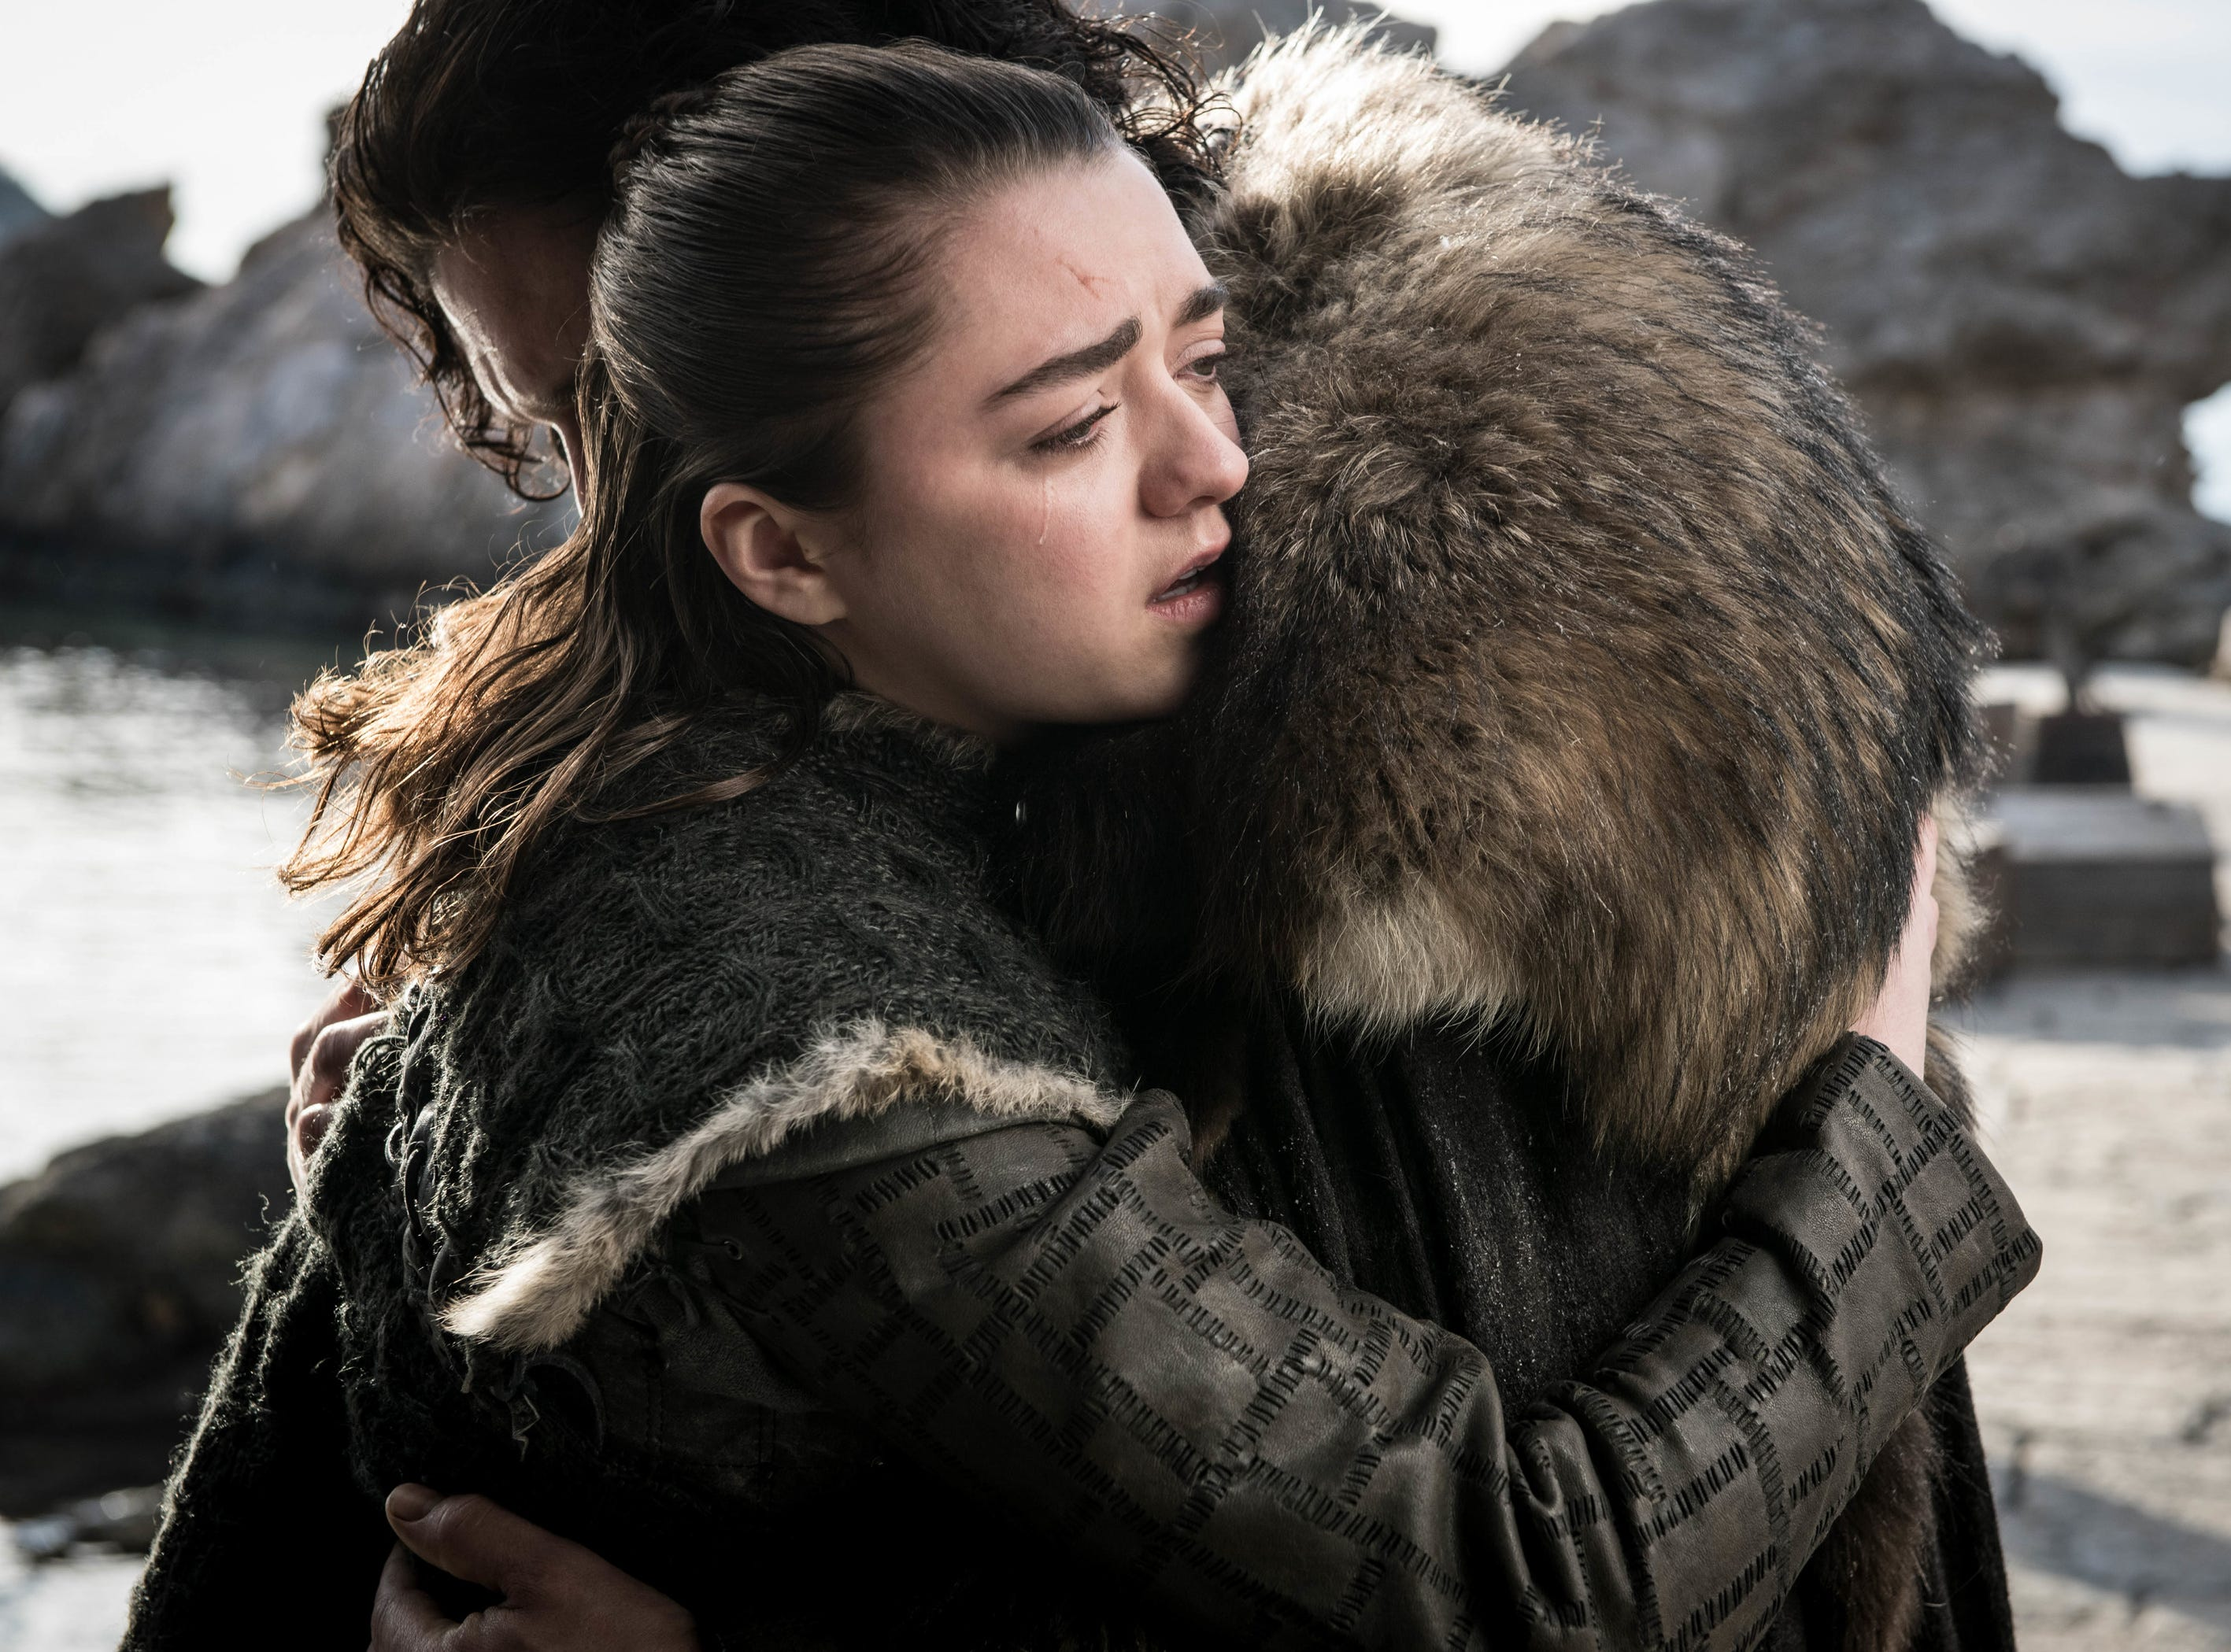 Arya Stark (Maisie Williams), foreground, shares a tearful embrace with Jon Snow (Kit Harington).